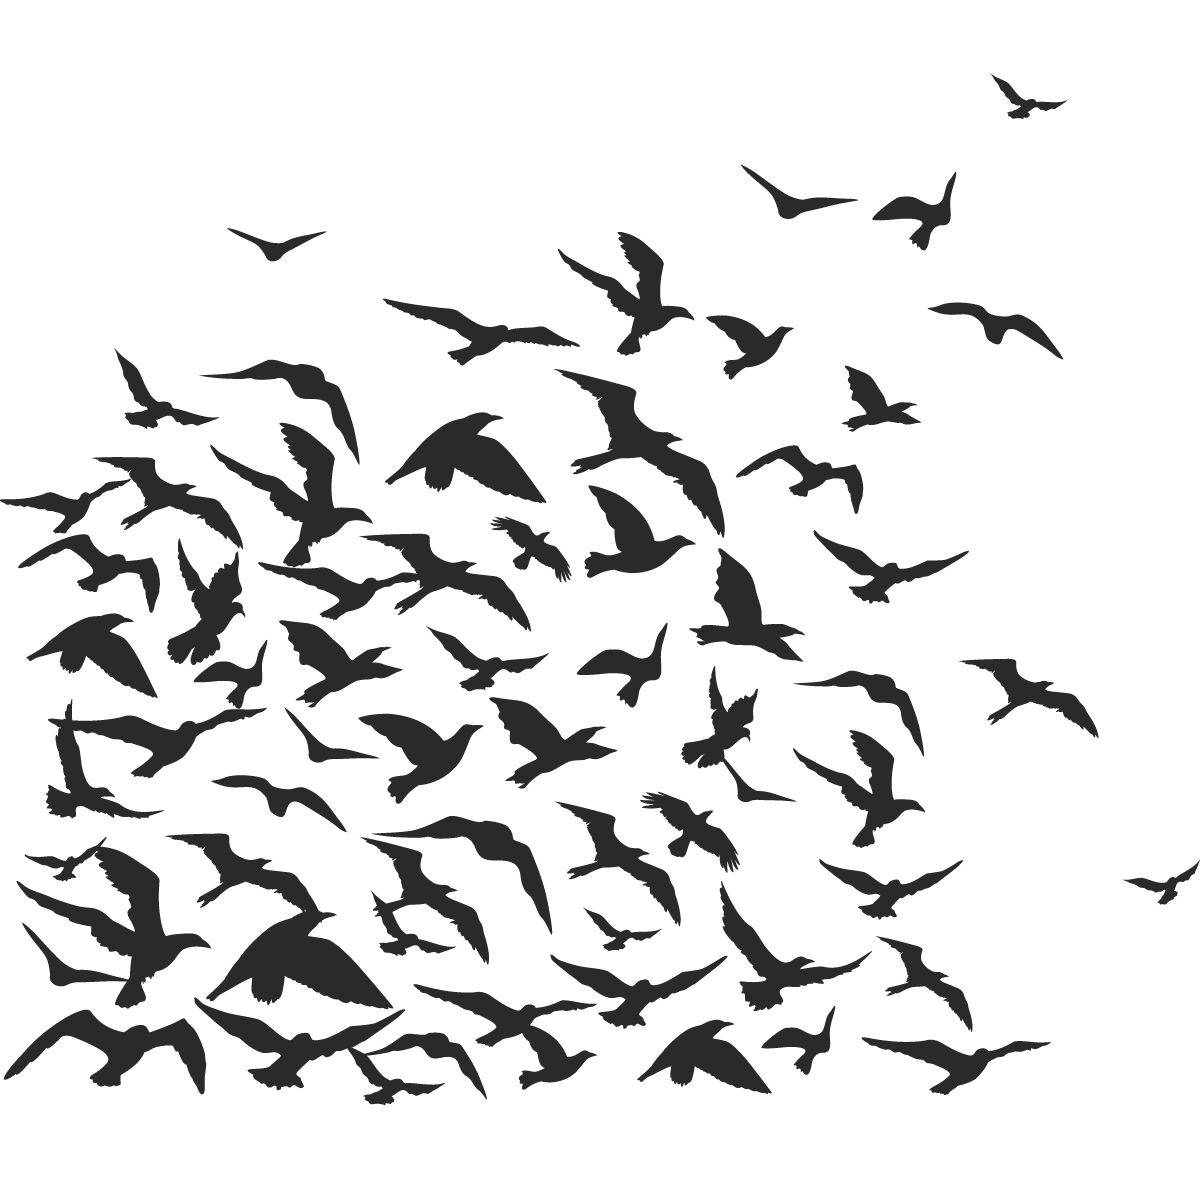 Flock Of Birds Animals Wall Art Decal Wall Stickers Transfers Inside Well Known Flock Of Birds Wall Art (View 7 of 15)